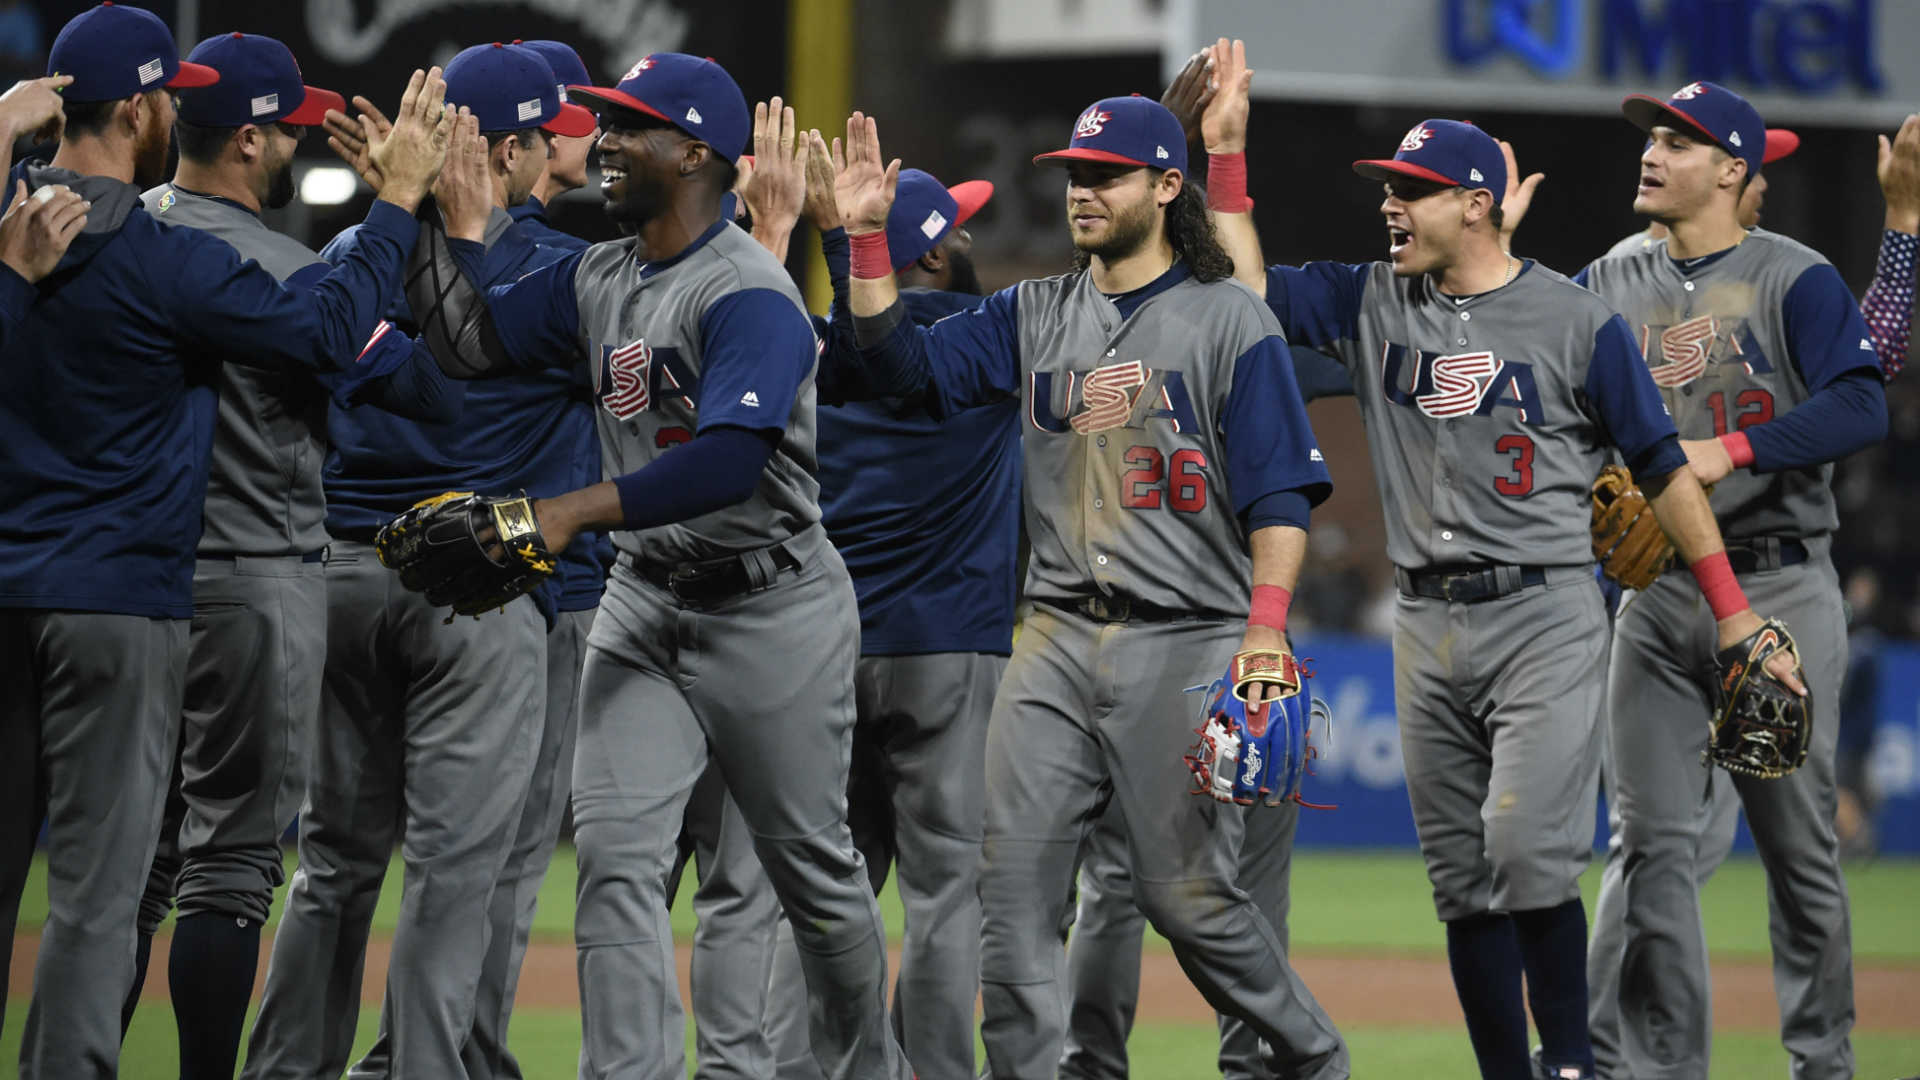 Will you watch Team USA in the WBC Semifinal tonight?